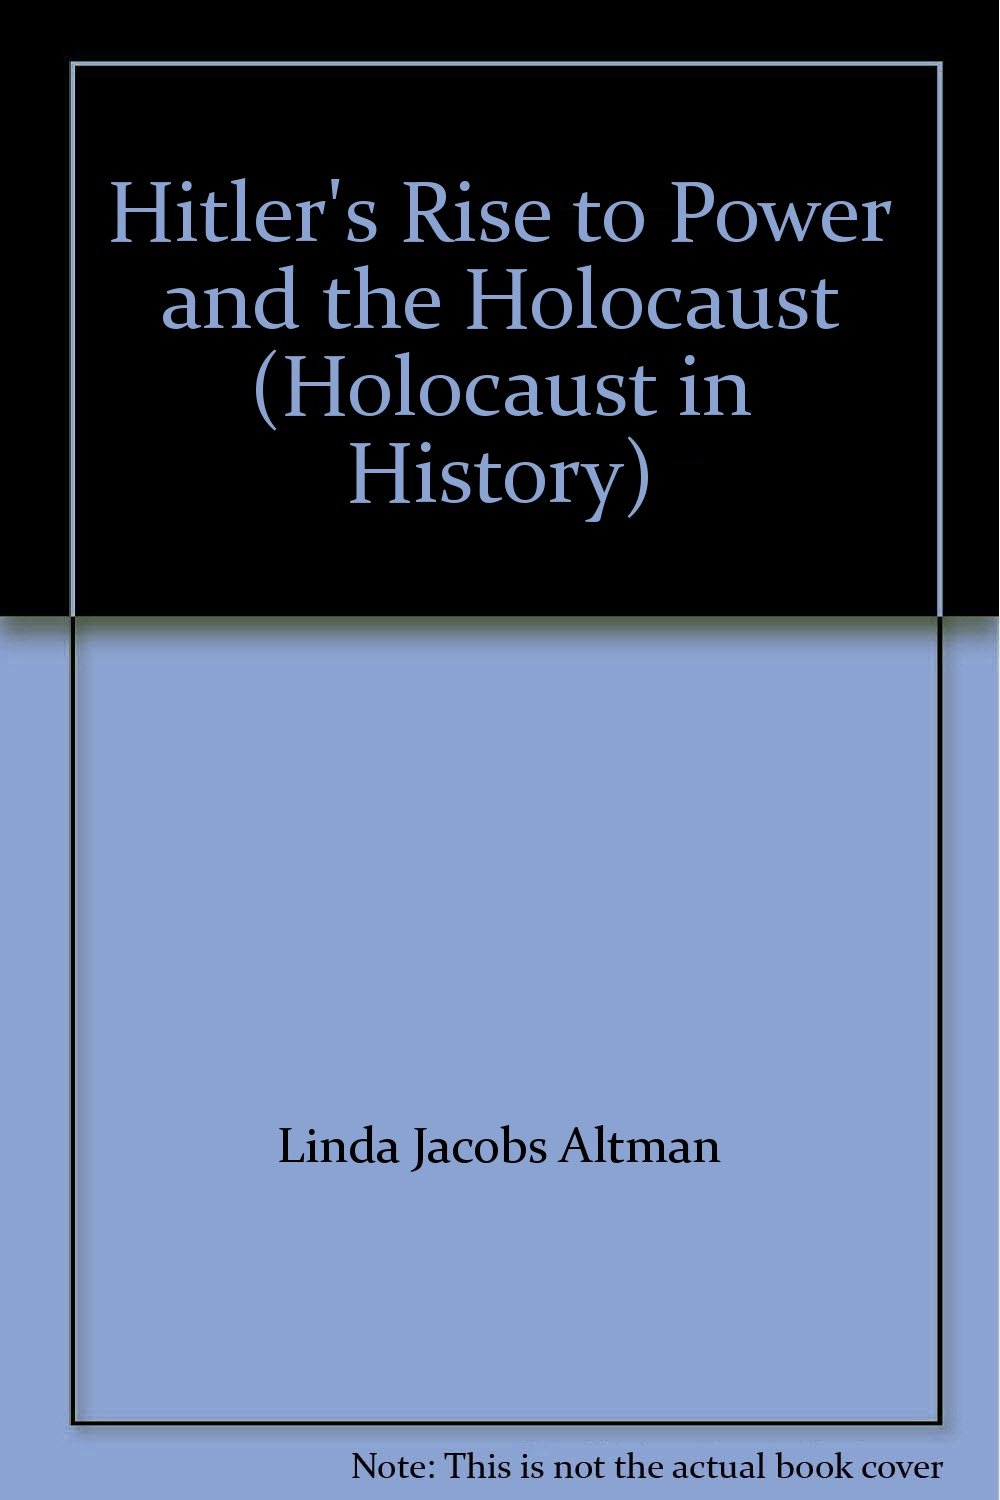 Hitler's Rise to Power and the Holocaust (Holocaust in History)